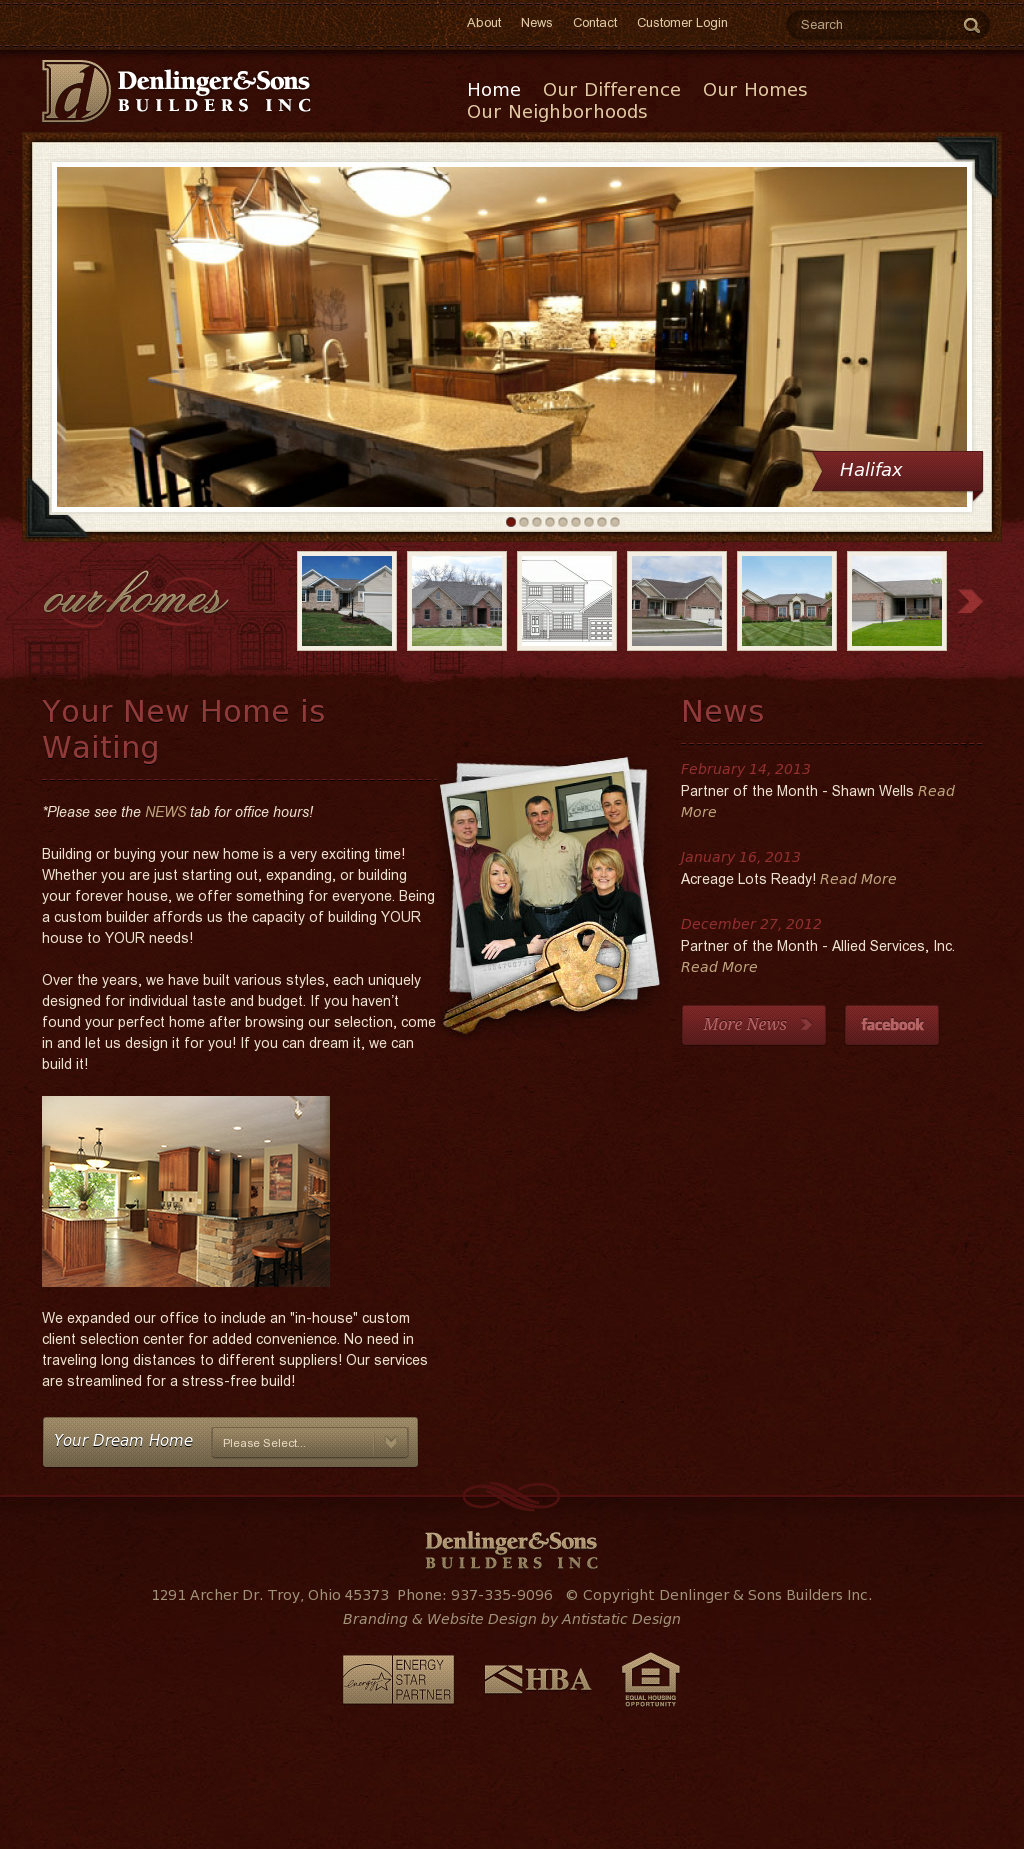 Denlinger & Sons Custom Home Builders | Website Design | web design ...